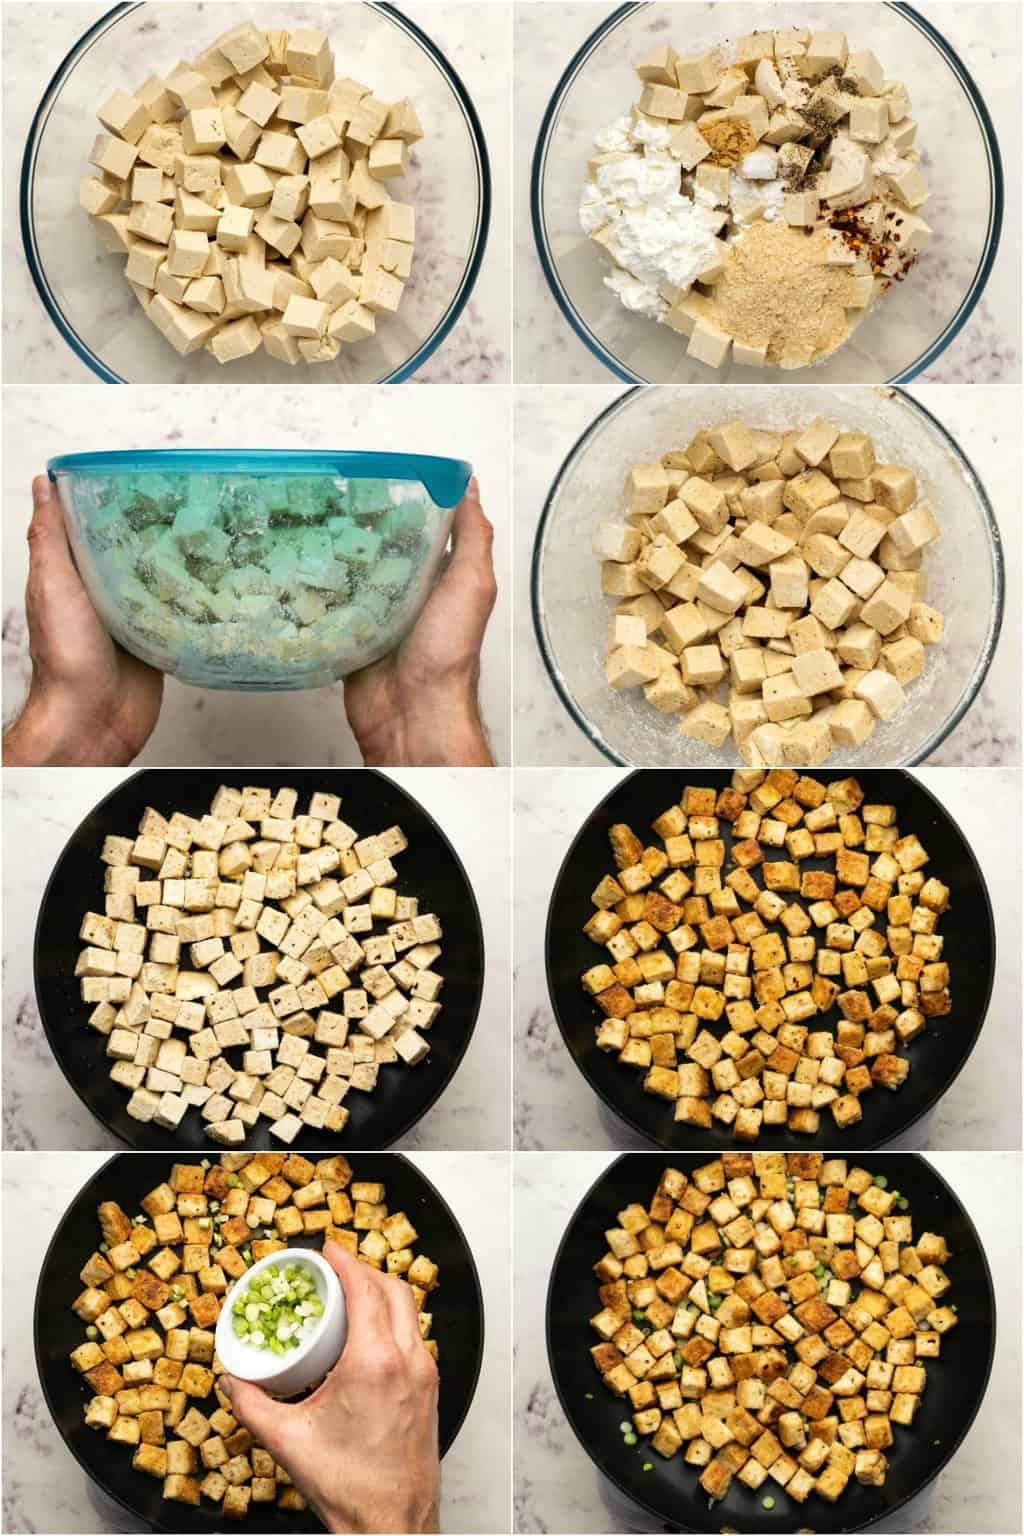 Step by step process photo collage of making crispy fried tofu.